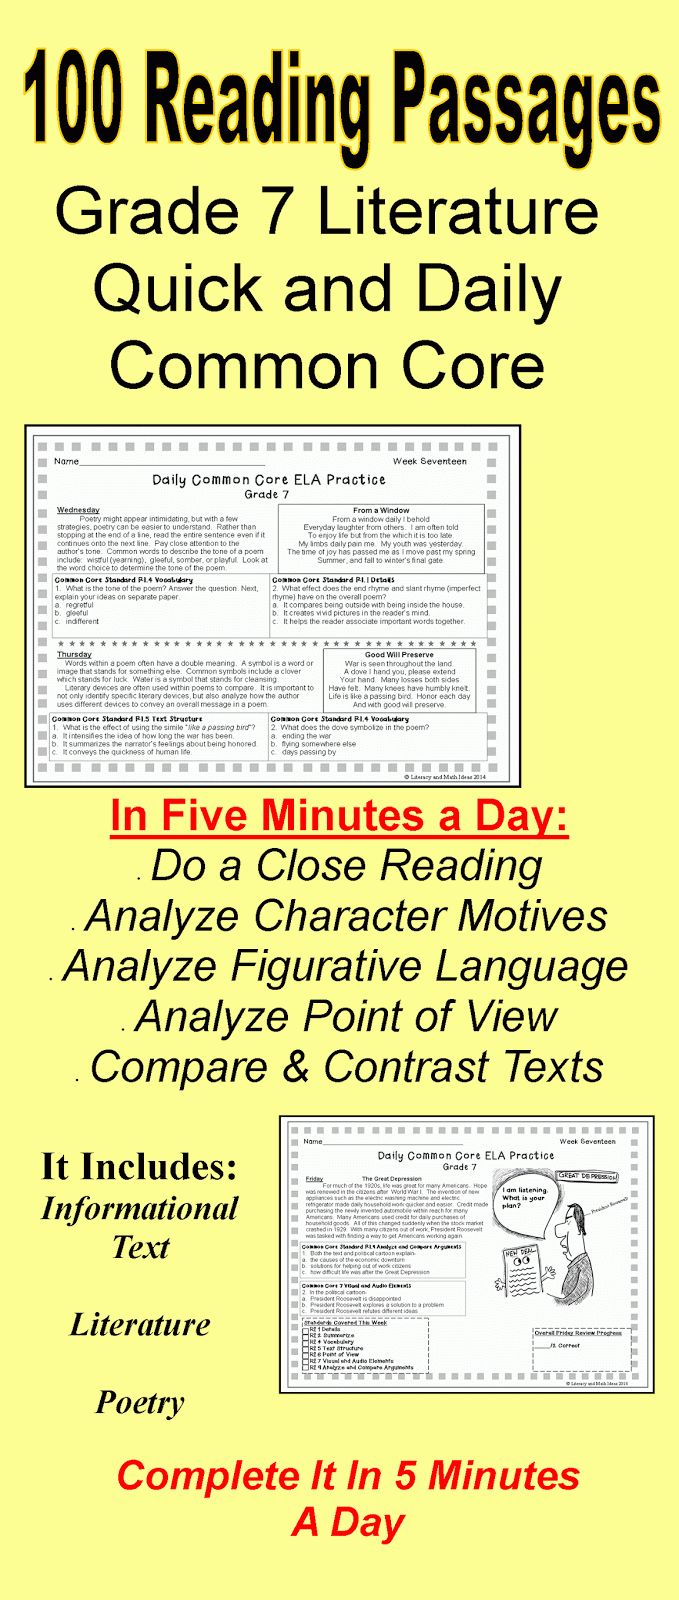 Worksheets Reading Comprehension Worksheets Grade 8 27 best reading passages images on pinterest teaching literacy math ideas 100 grade 7 daily common core literature